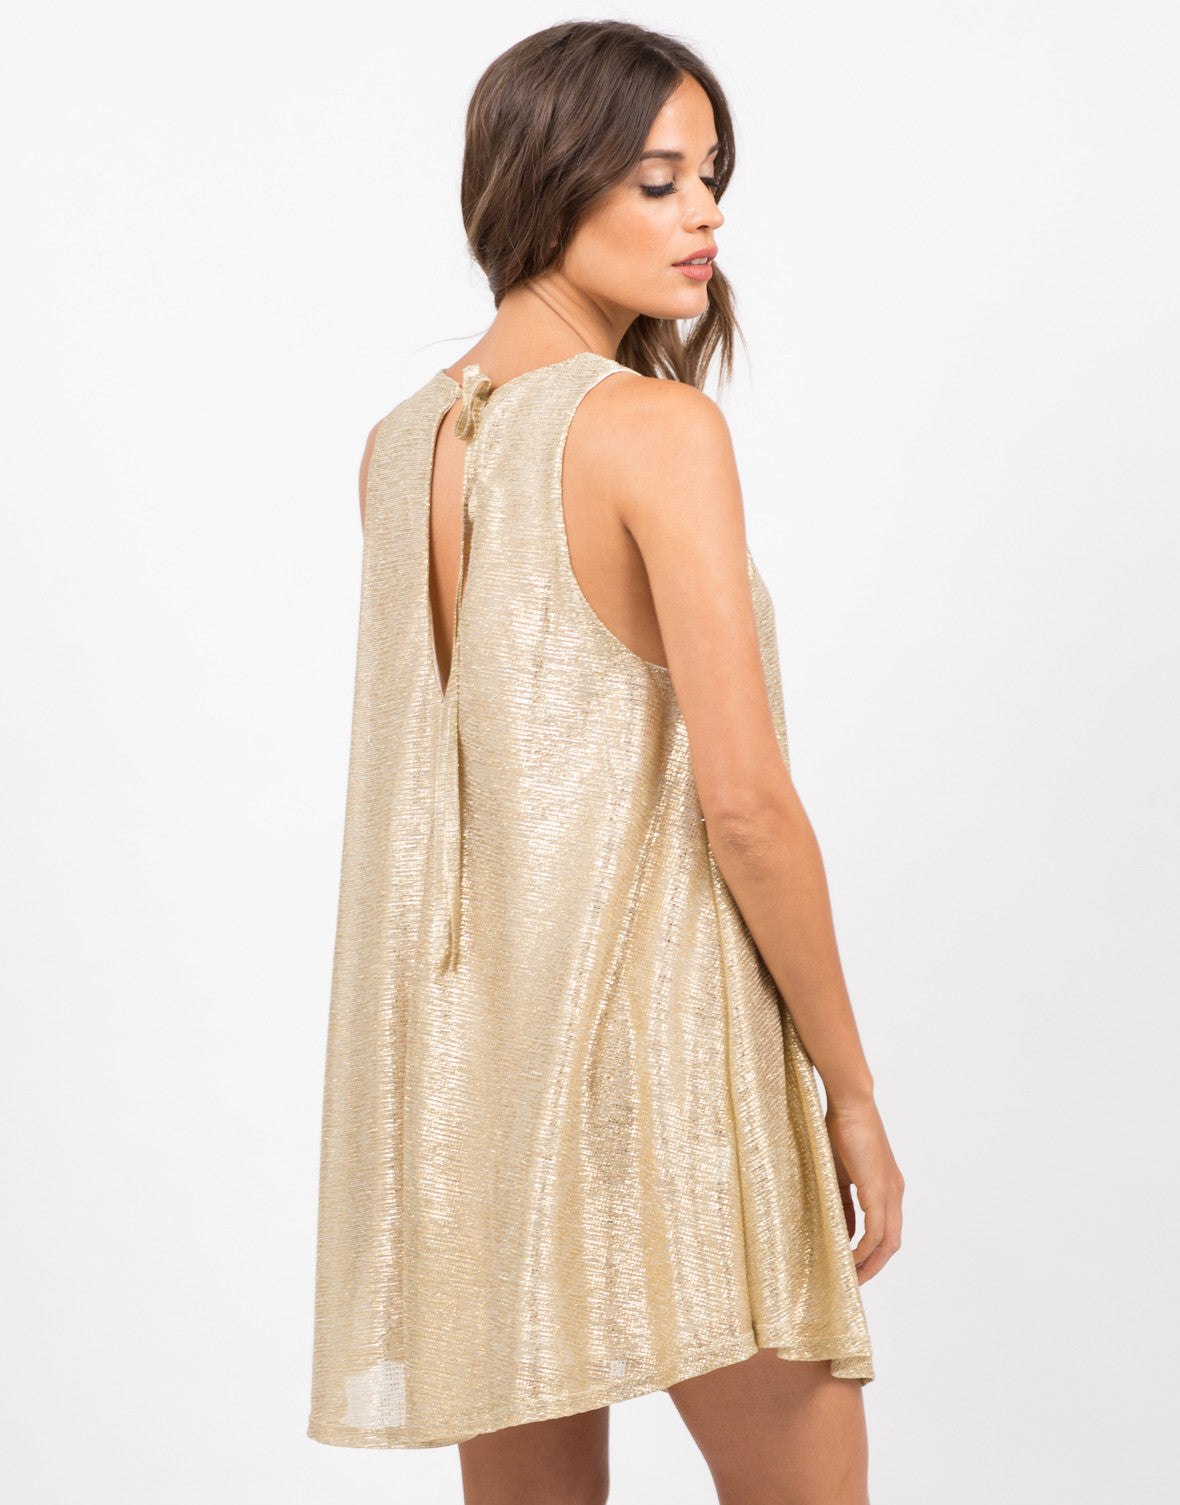 Back View of Golden Party Dress